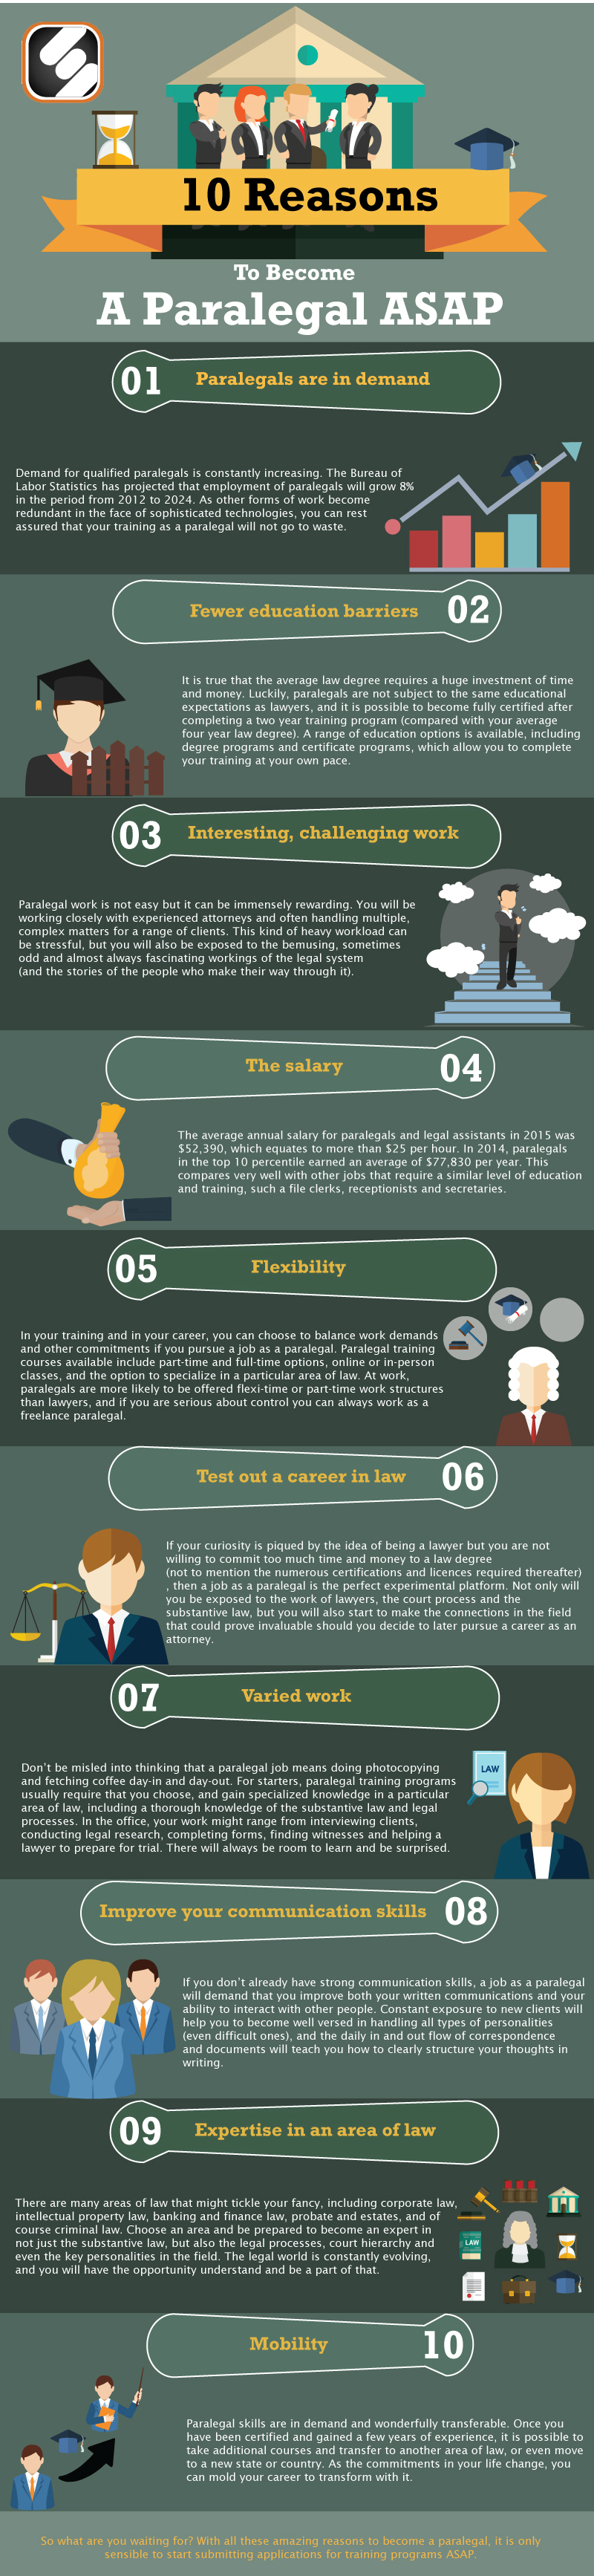 10 Reasons To Become A Paralegal ASAP